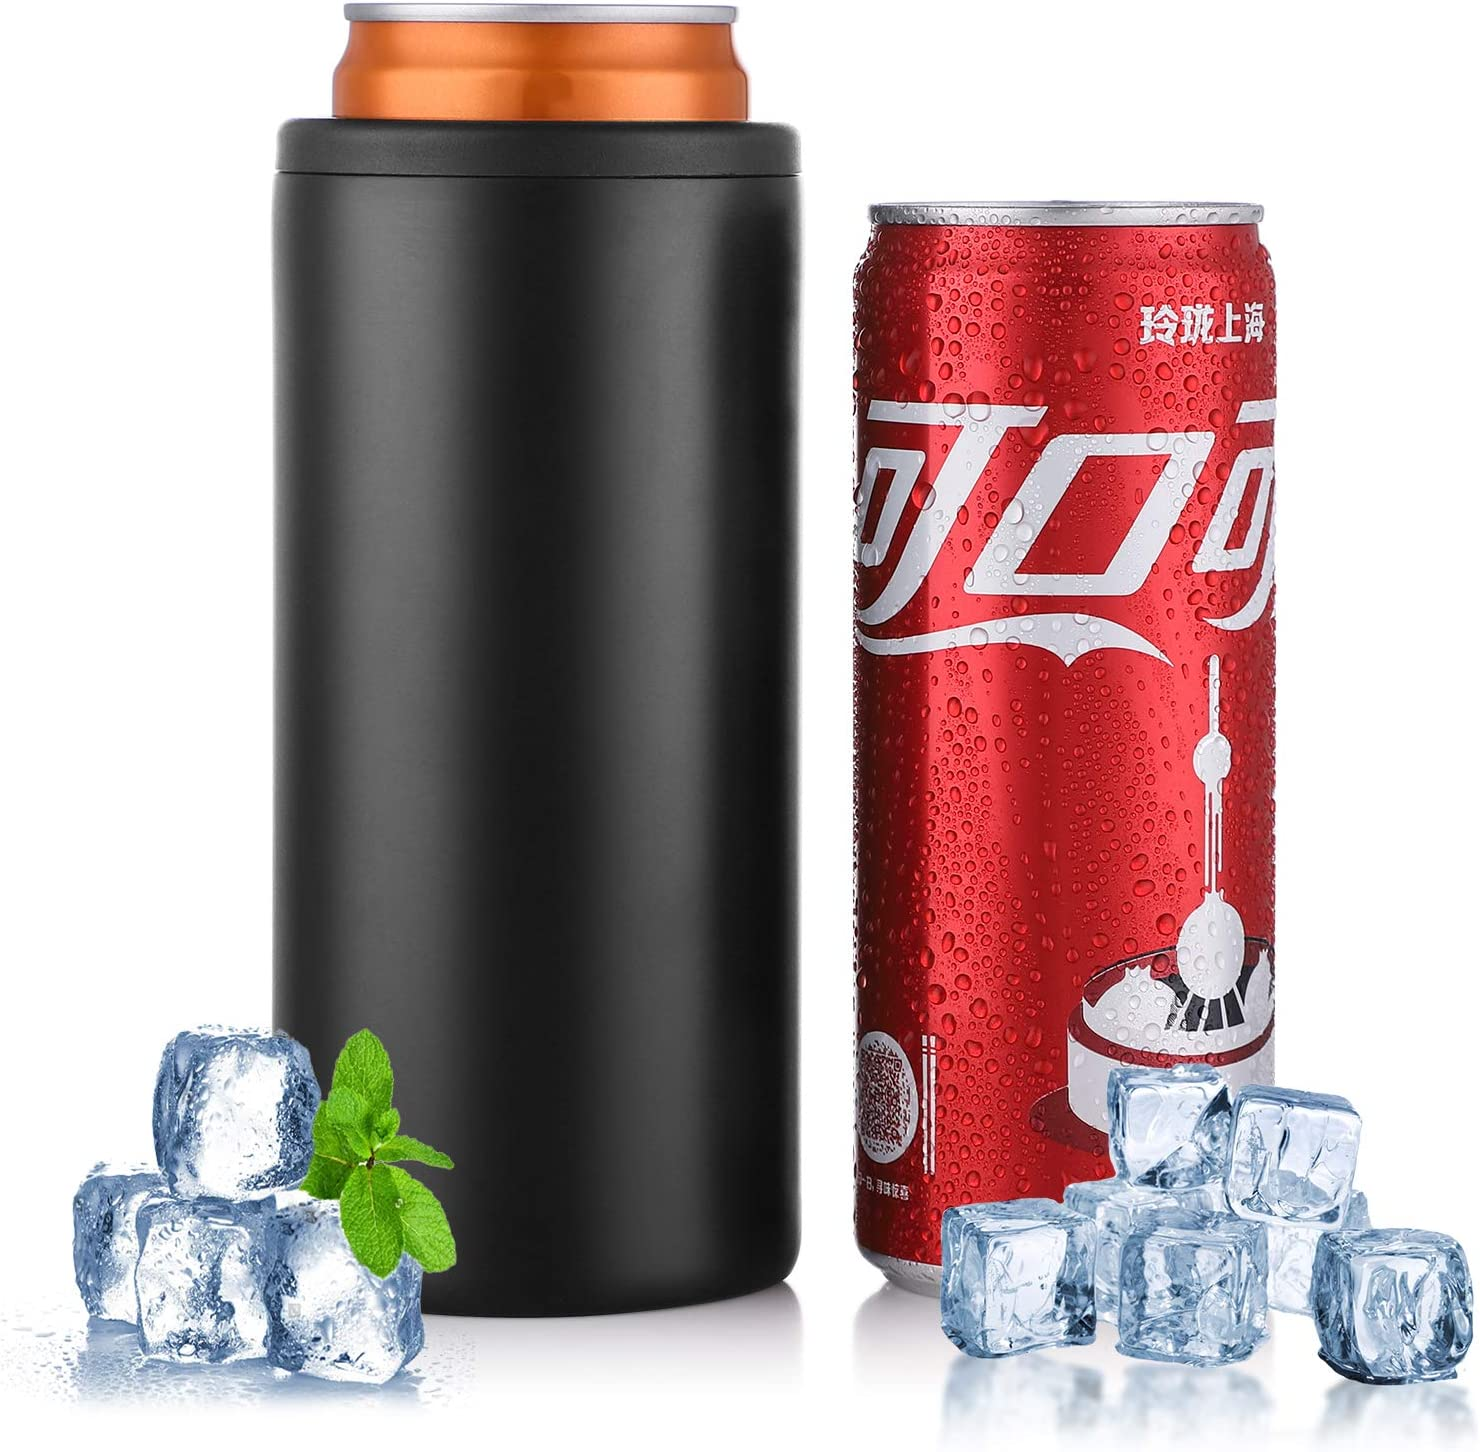 Stainless Steel Insulated Can Cooler for 12 Oz Slim Cans and Bot